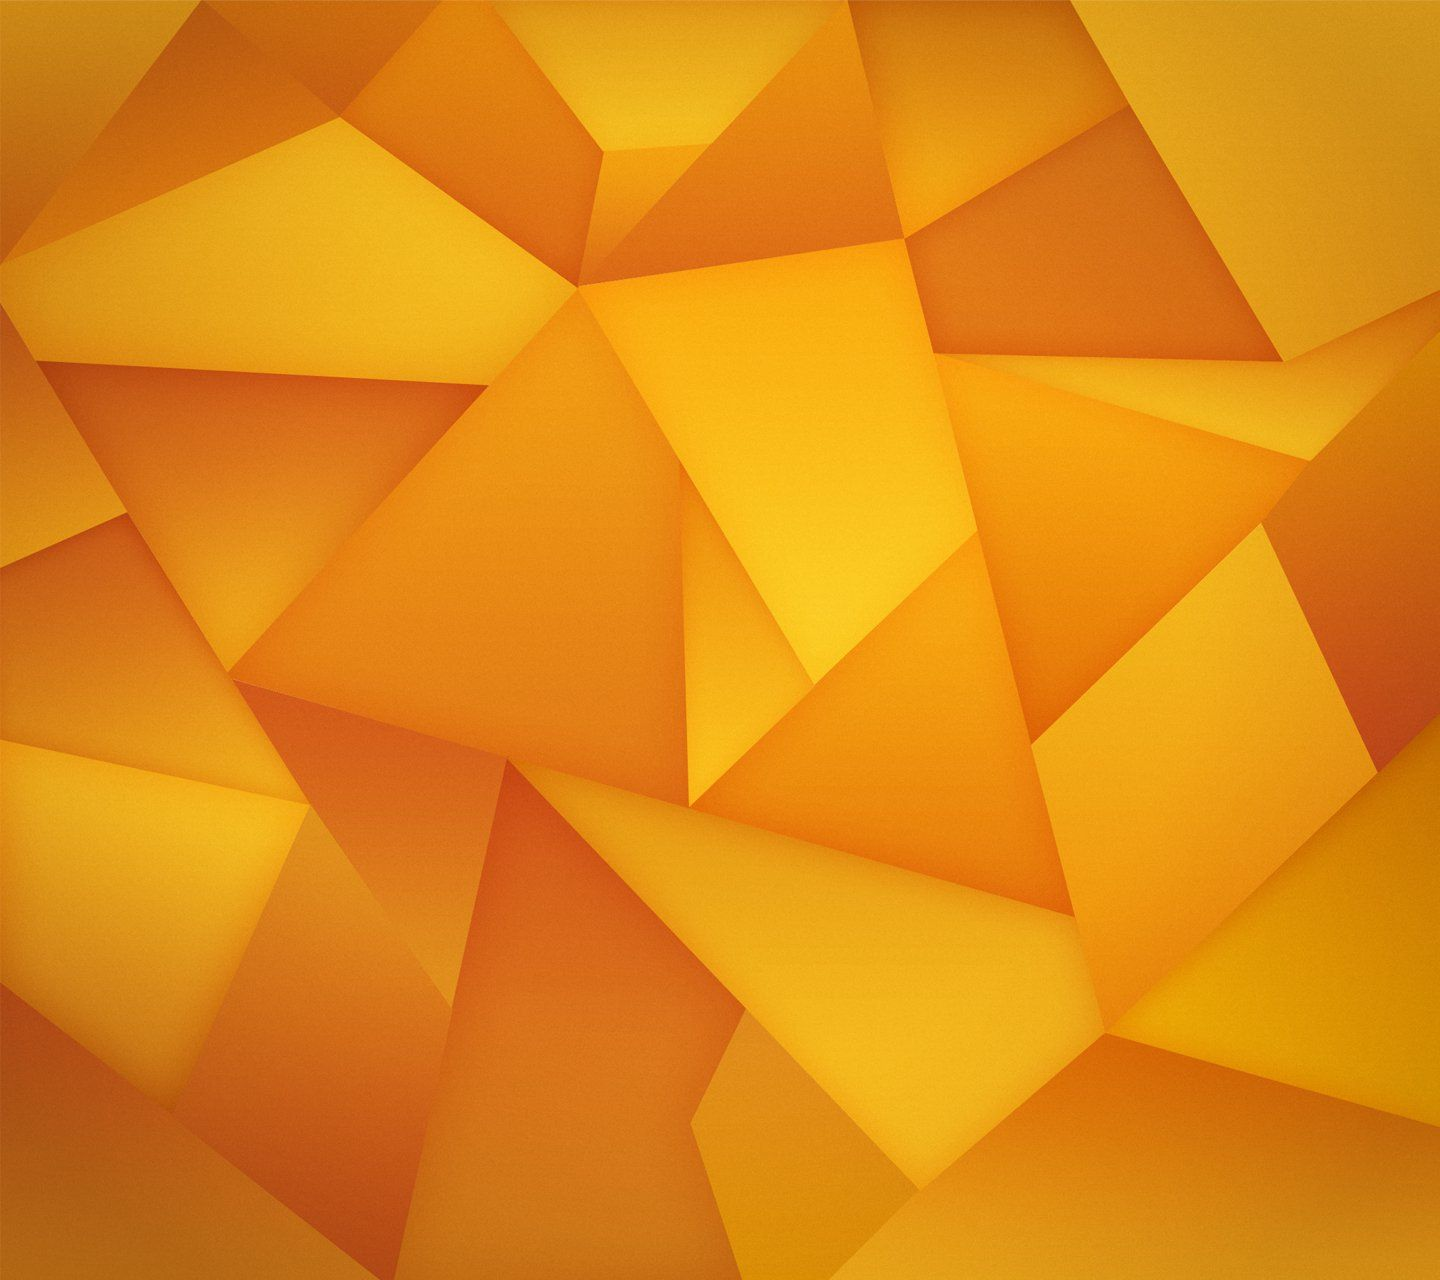 Related Image Yellow Wallpaper Samsung Galaxy Wallpaper Orange Wallpaper